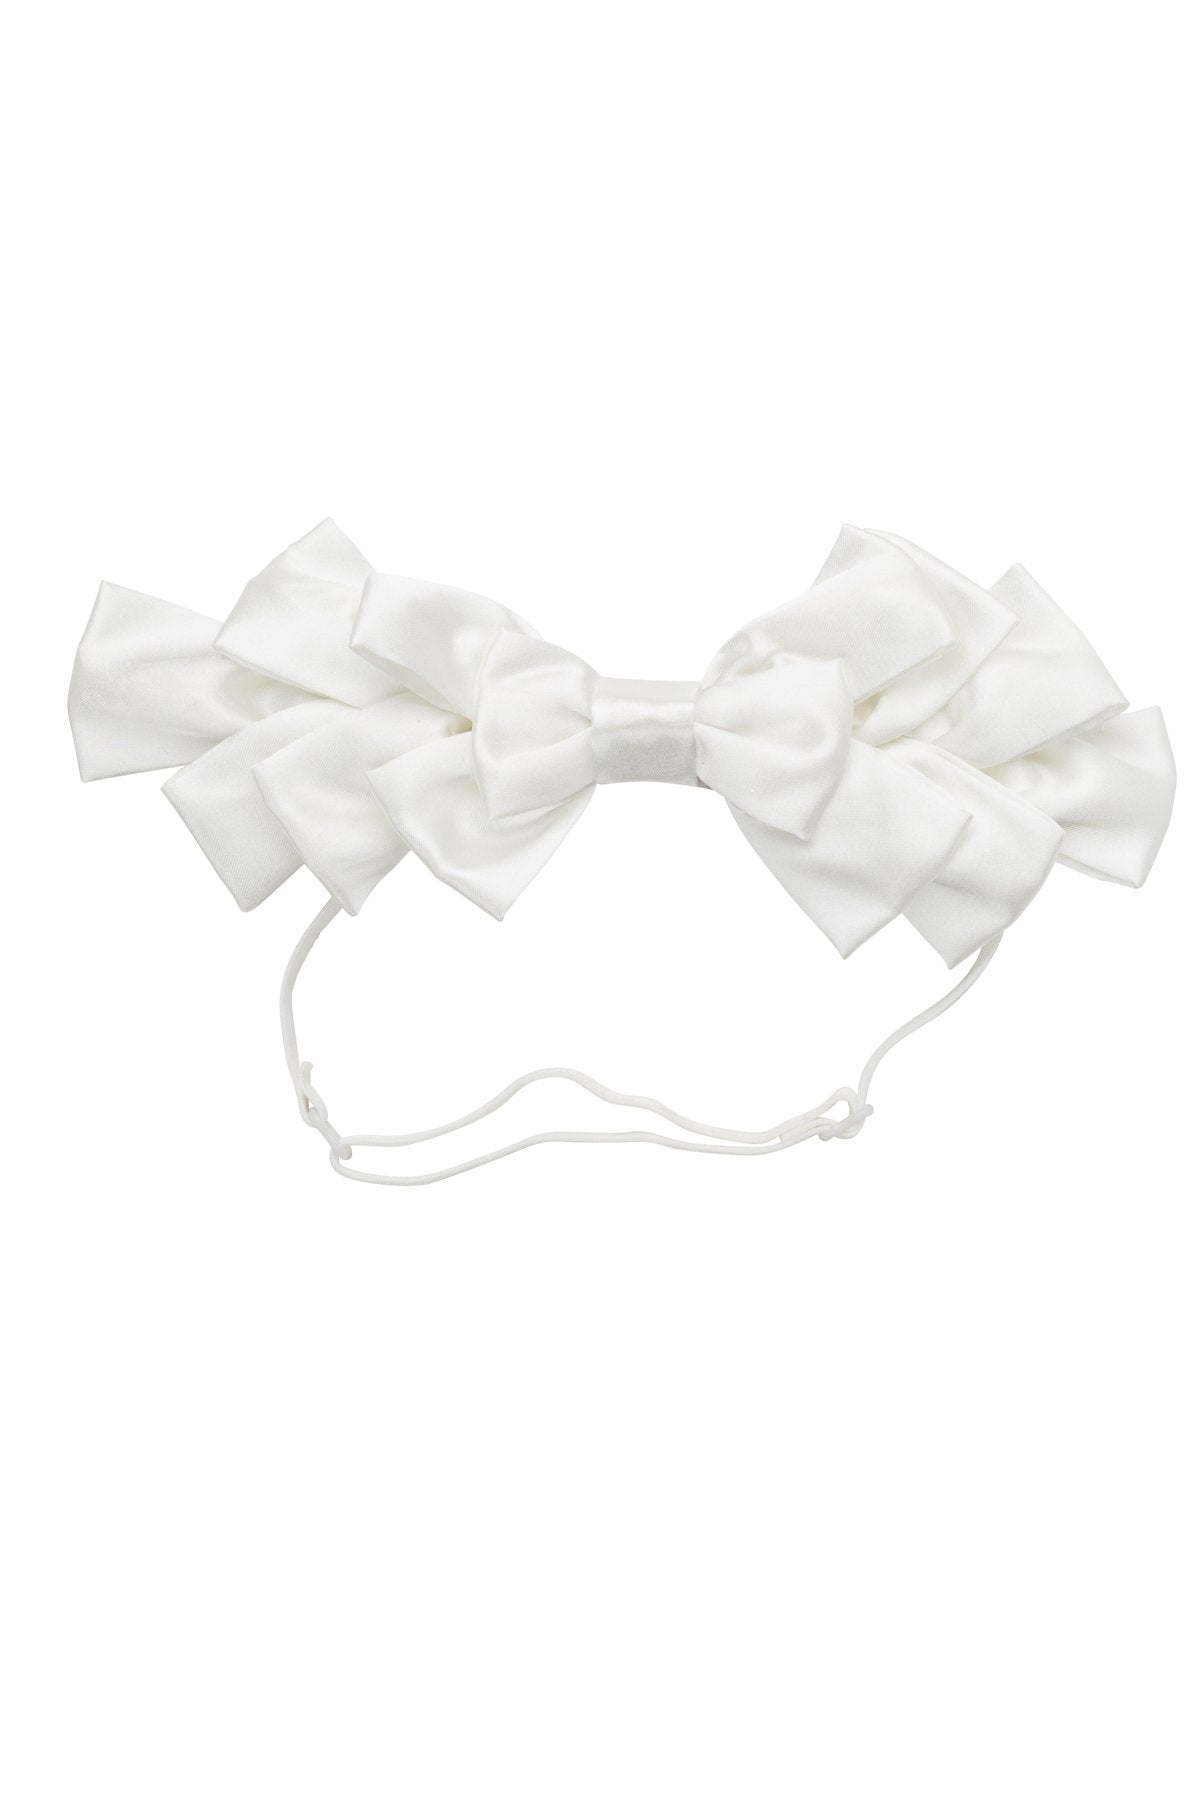 Pleated Ribbon Wrap - White - PROJECT 6, modest fashion